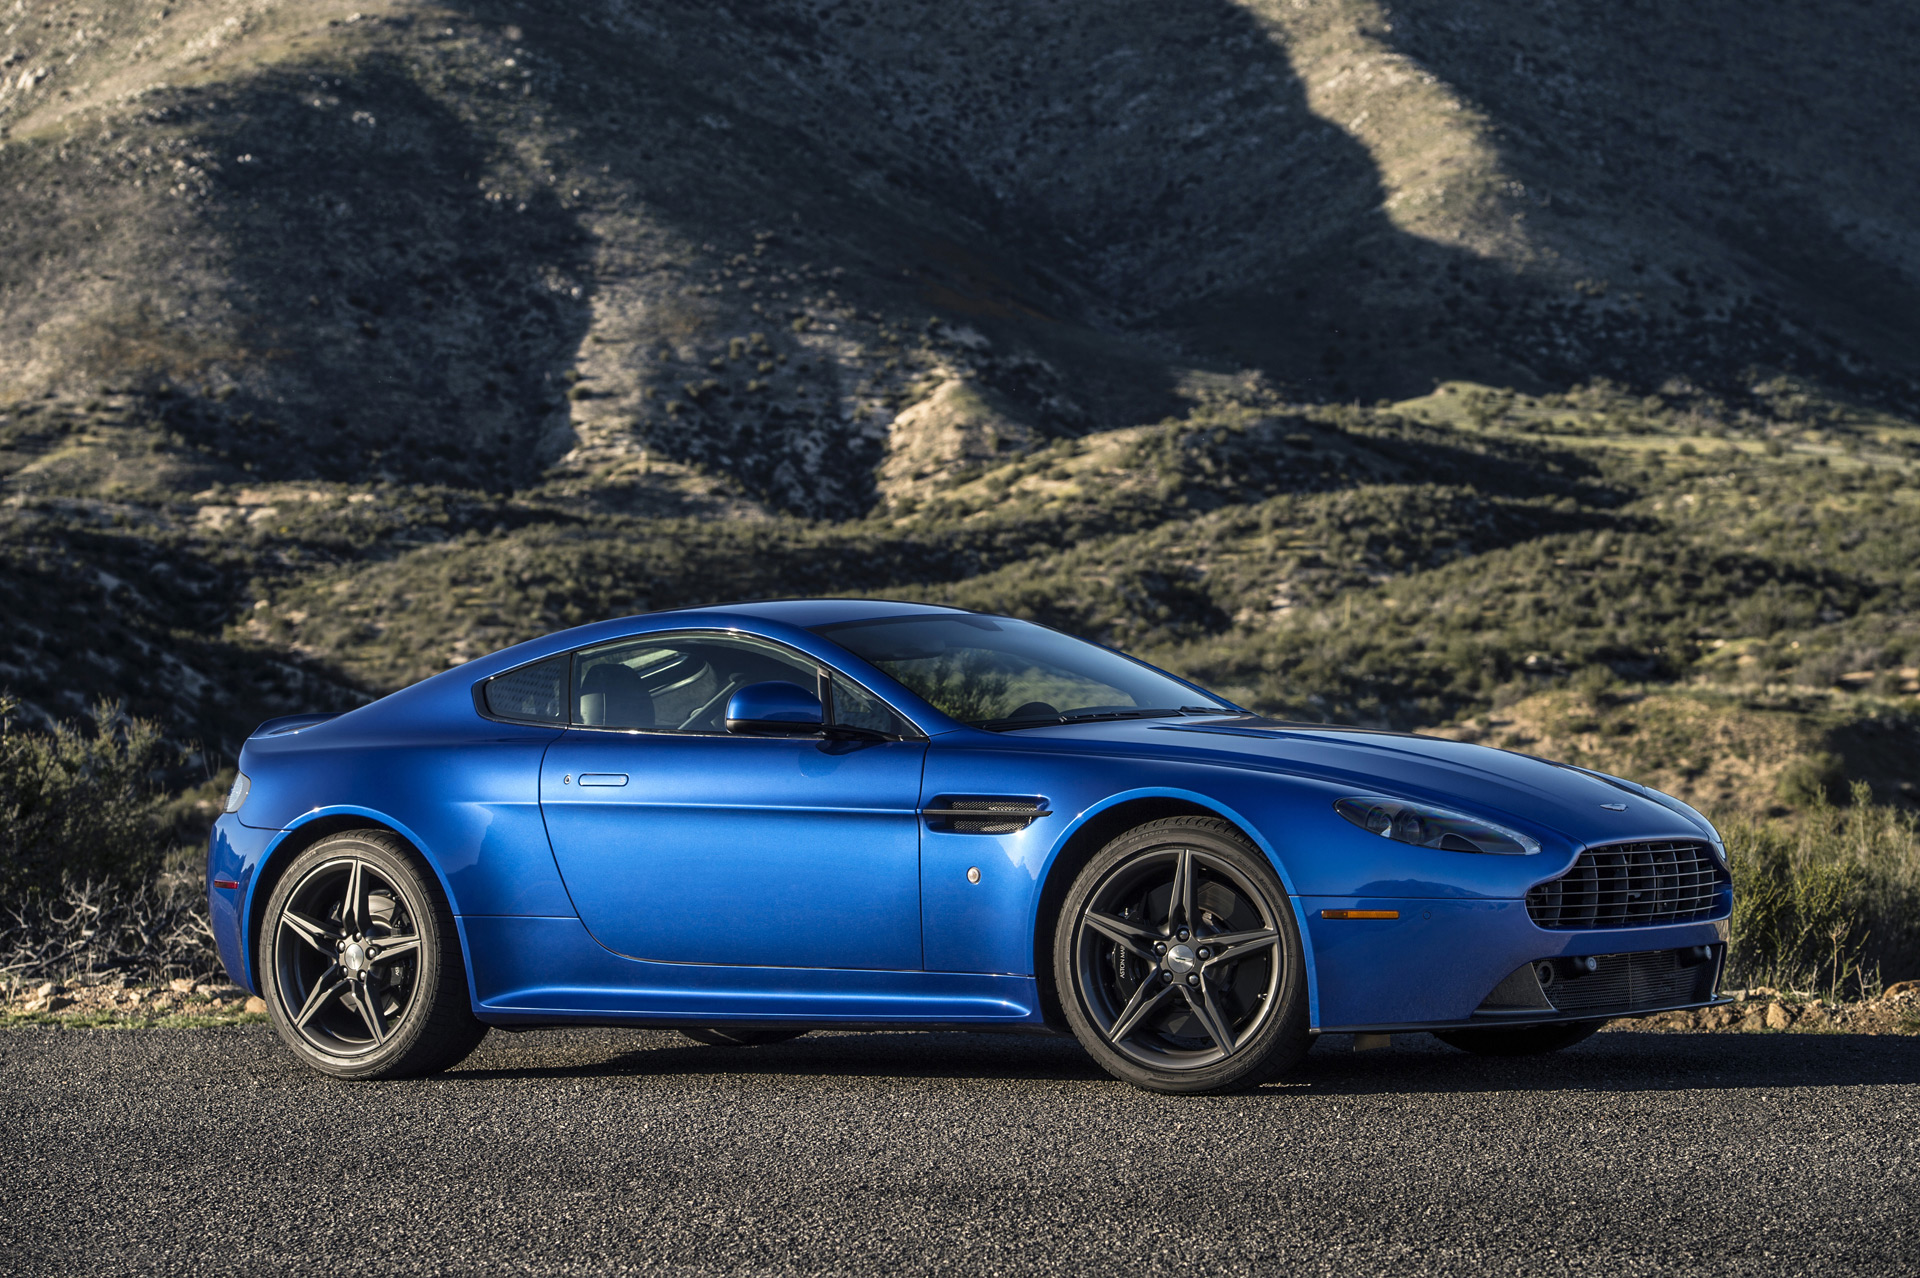 Aston Martin Vantage Priced From - How much does a aston martin cost